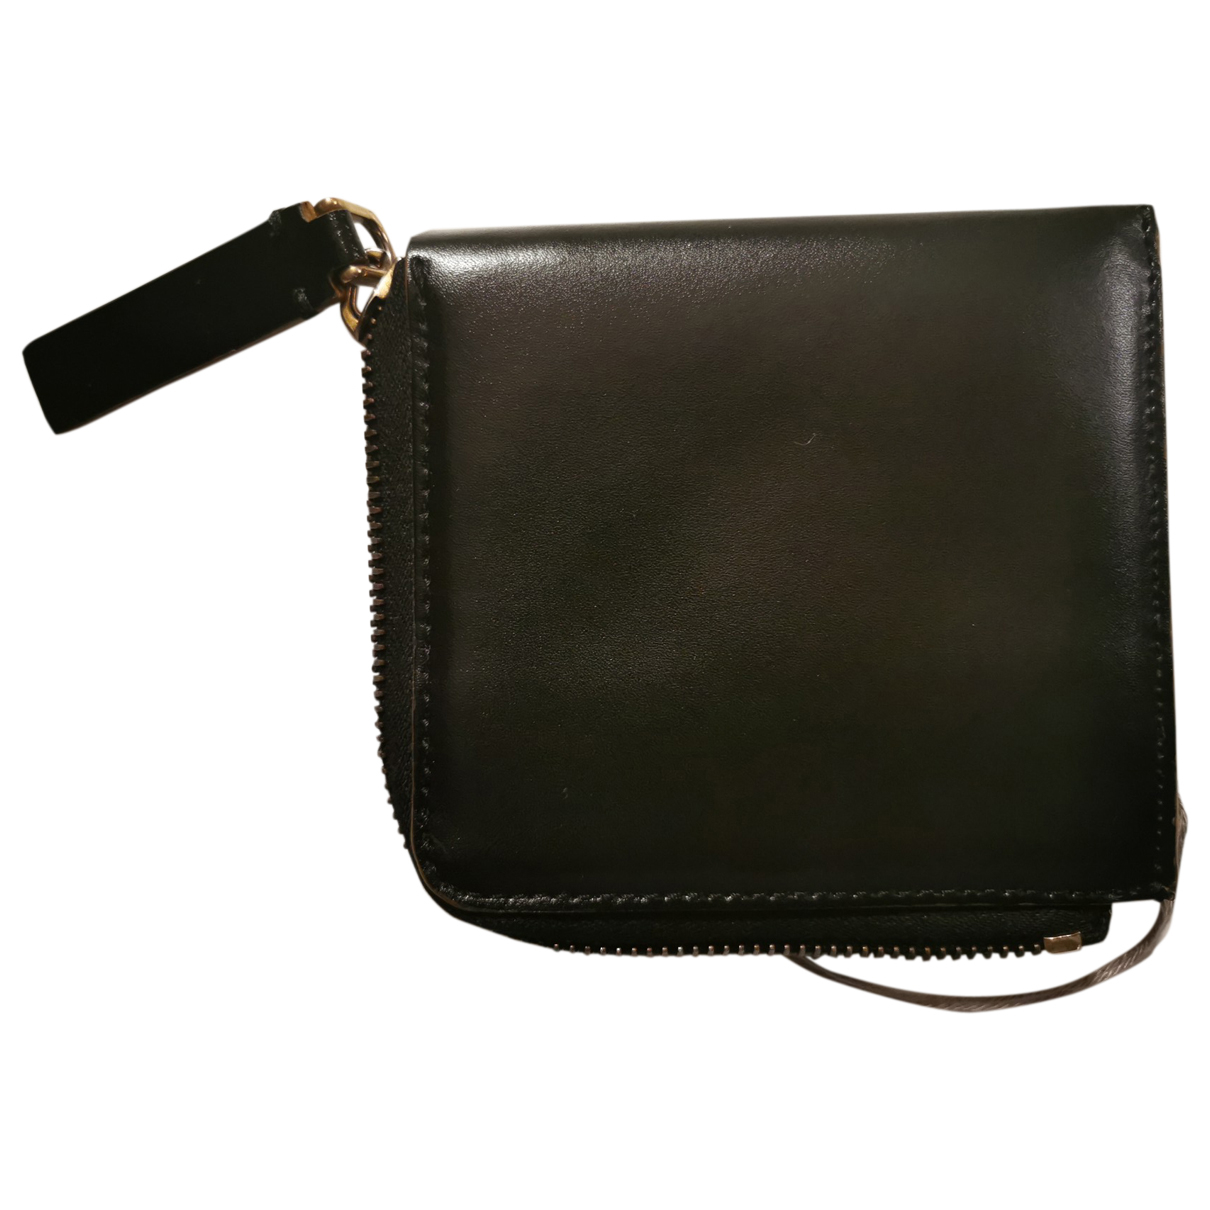 Marni N Black Leather Small bag, wallet & cases for Men N